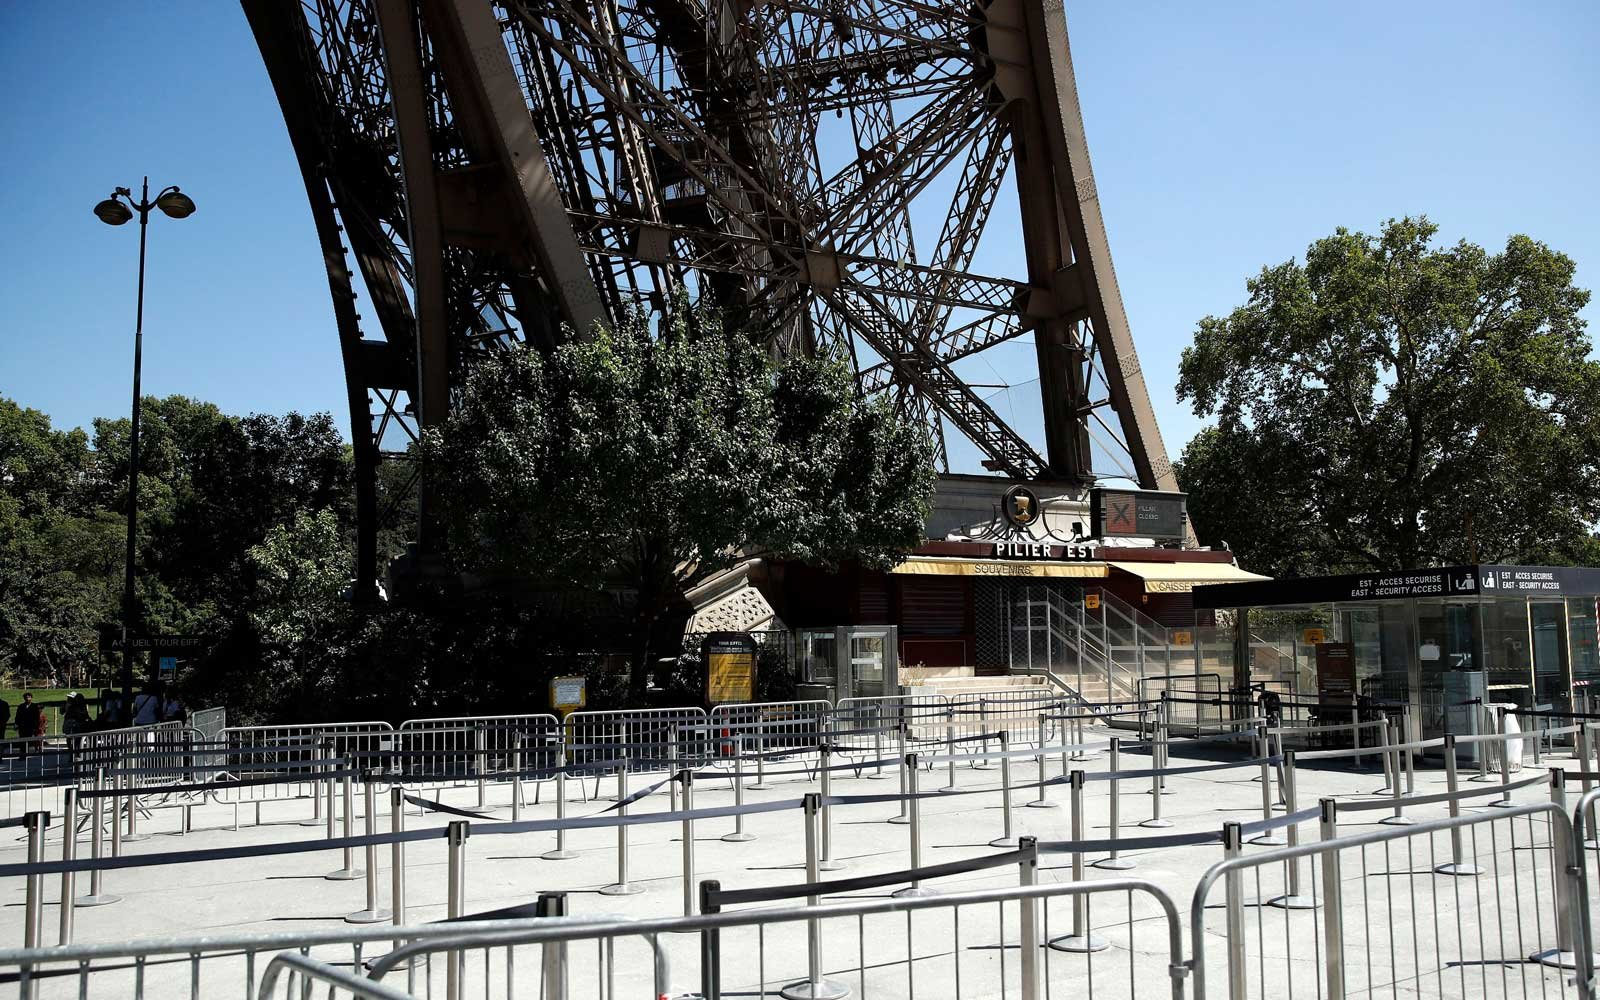 Eiffel tower employees go on strike, Paris, France - 02 Aug 2018